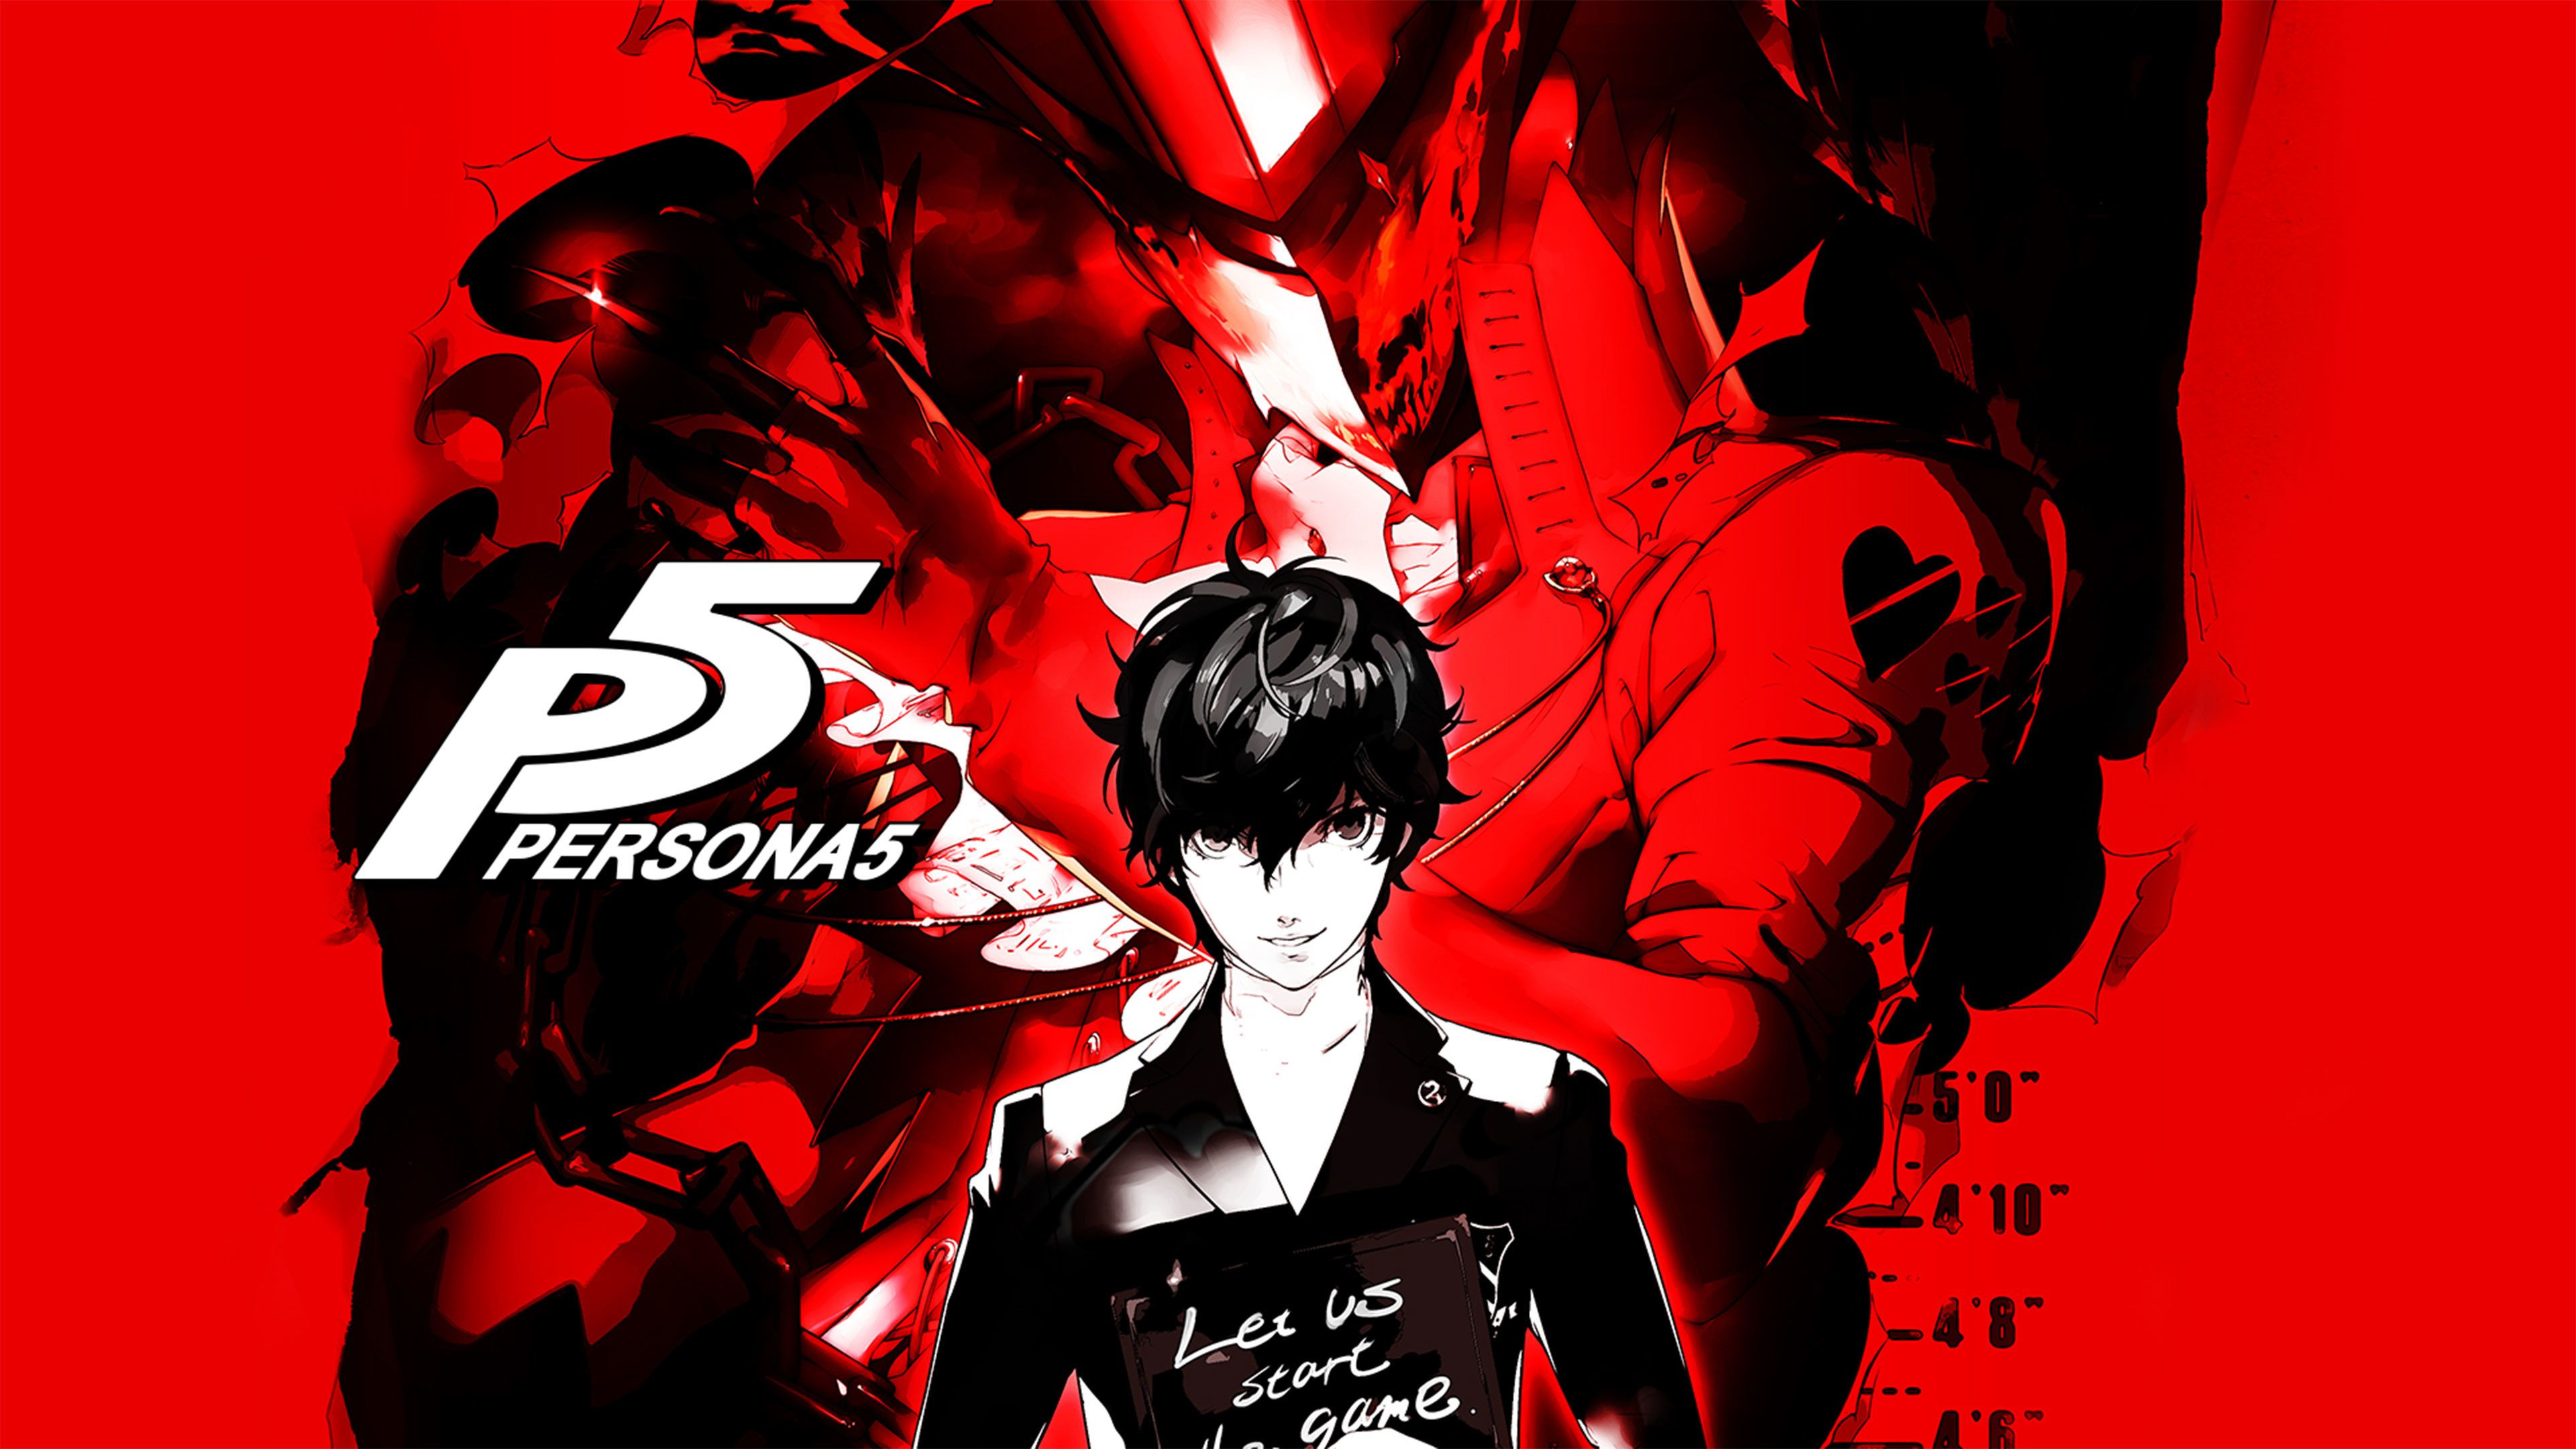 persona 5 dancing star night wallpaper